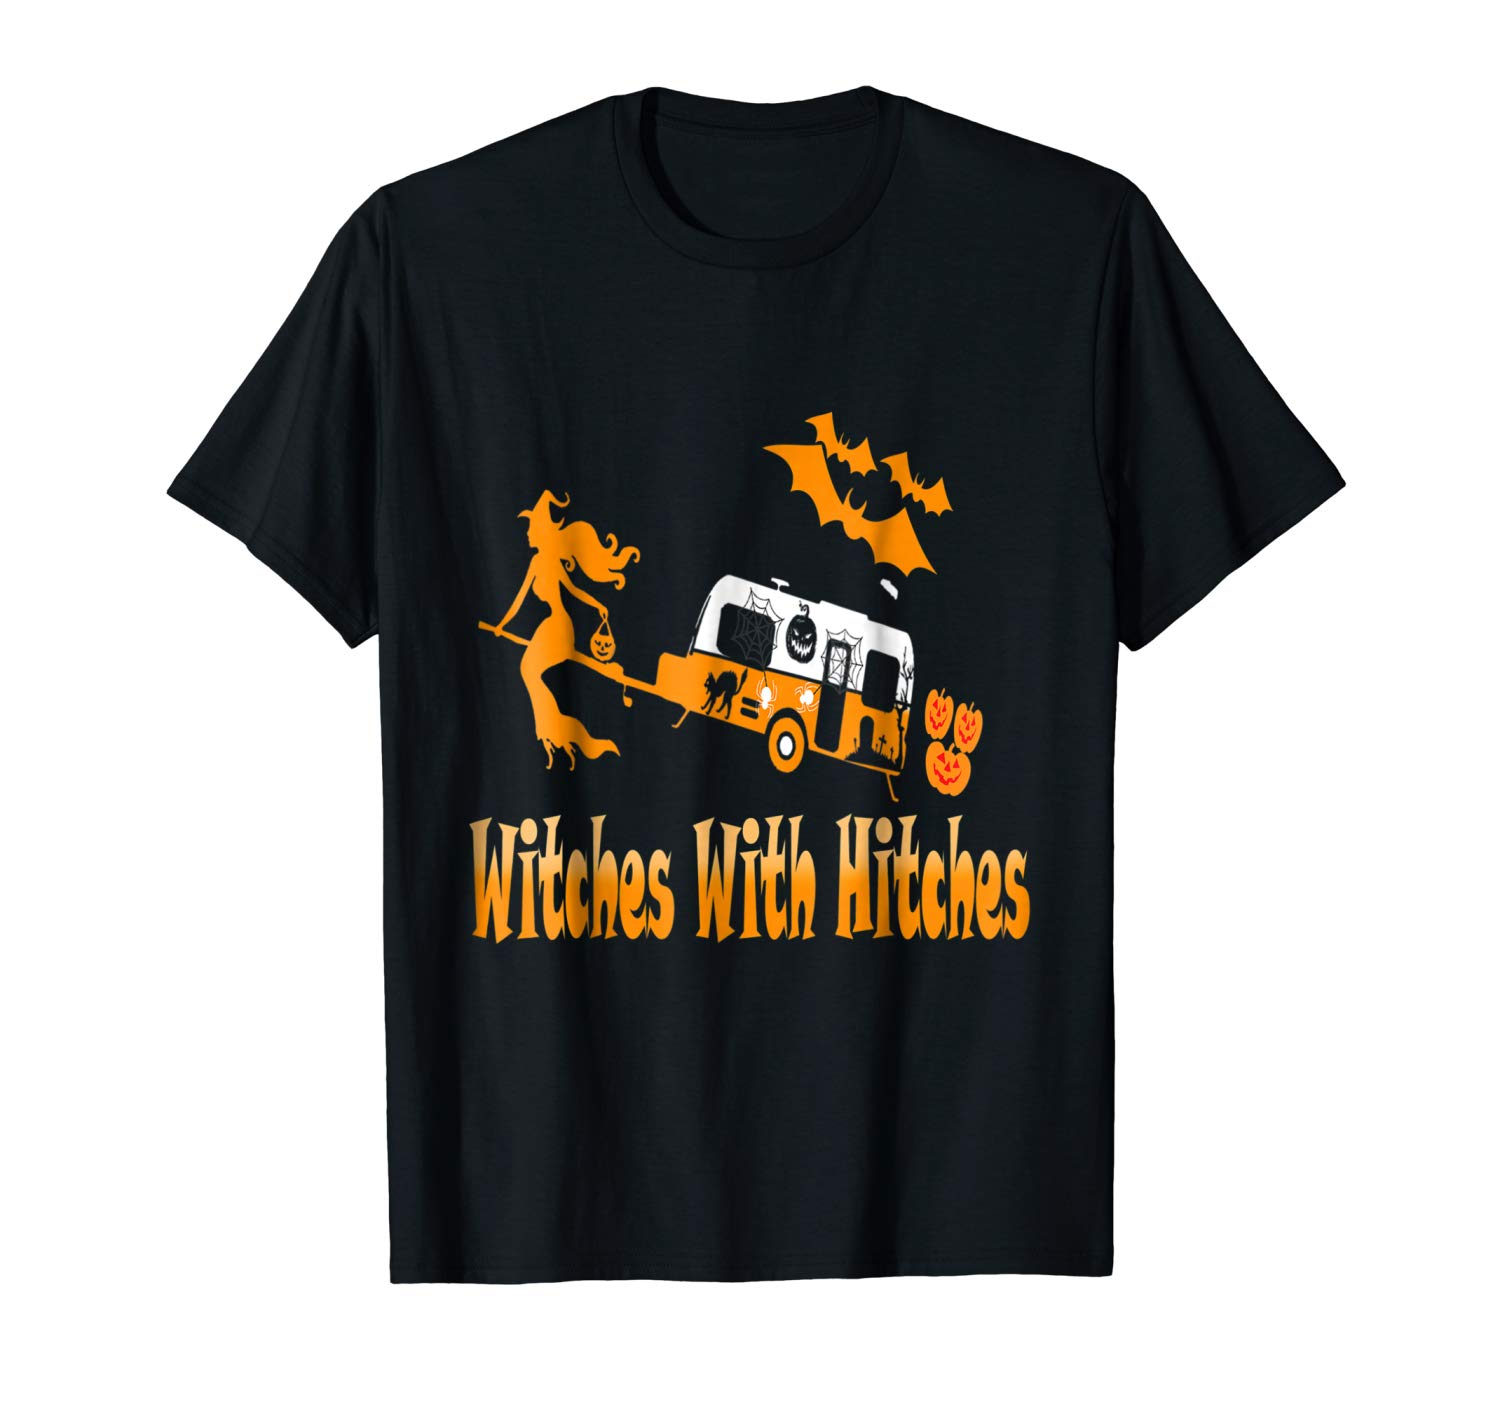 Witches With Hitches Camping Funny Halloween T Shirt